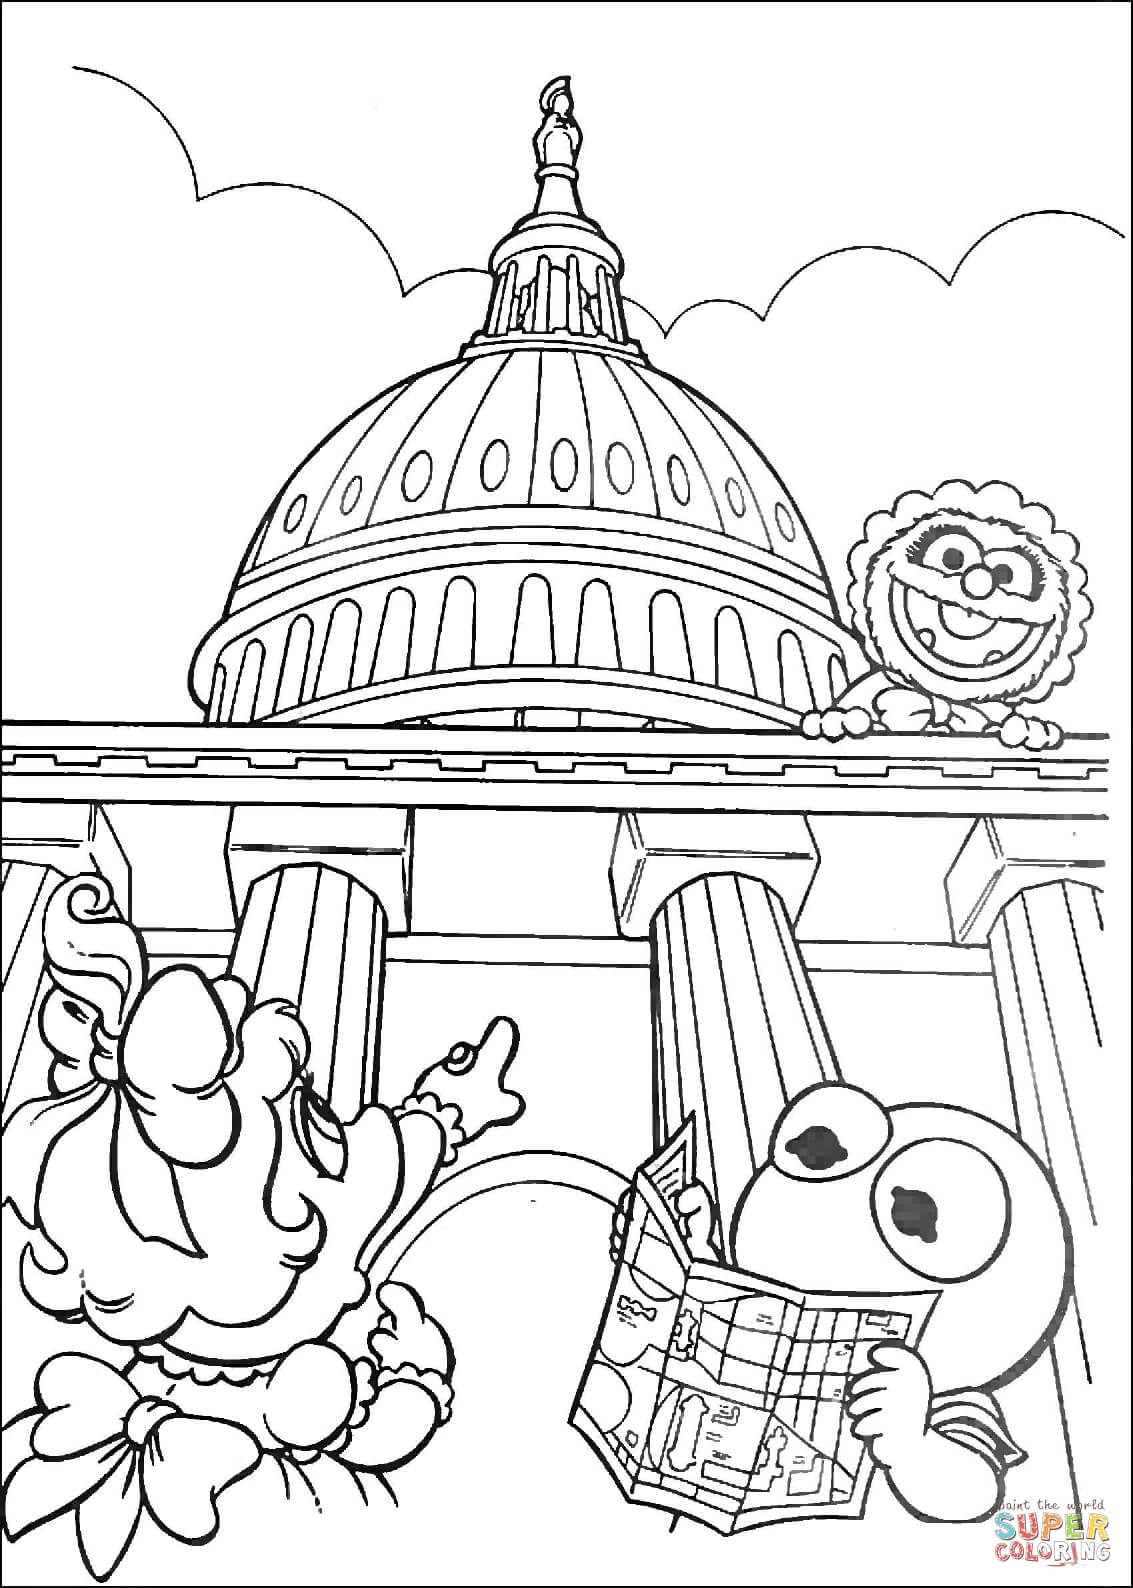 Muppet Babies In Washington D C Coloring Page